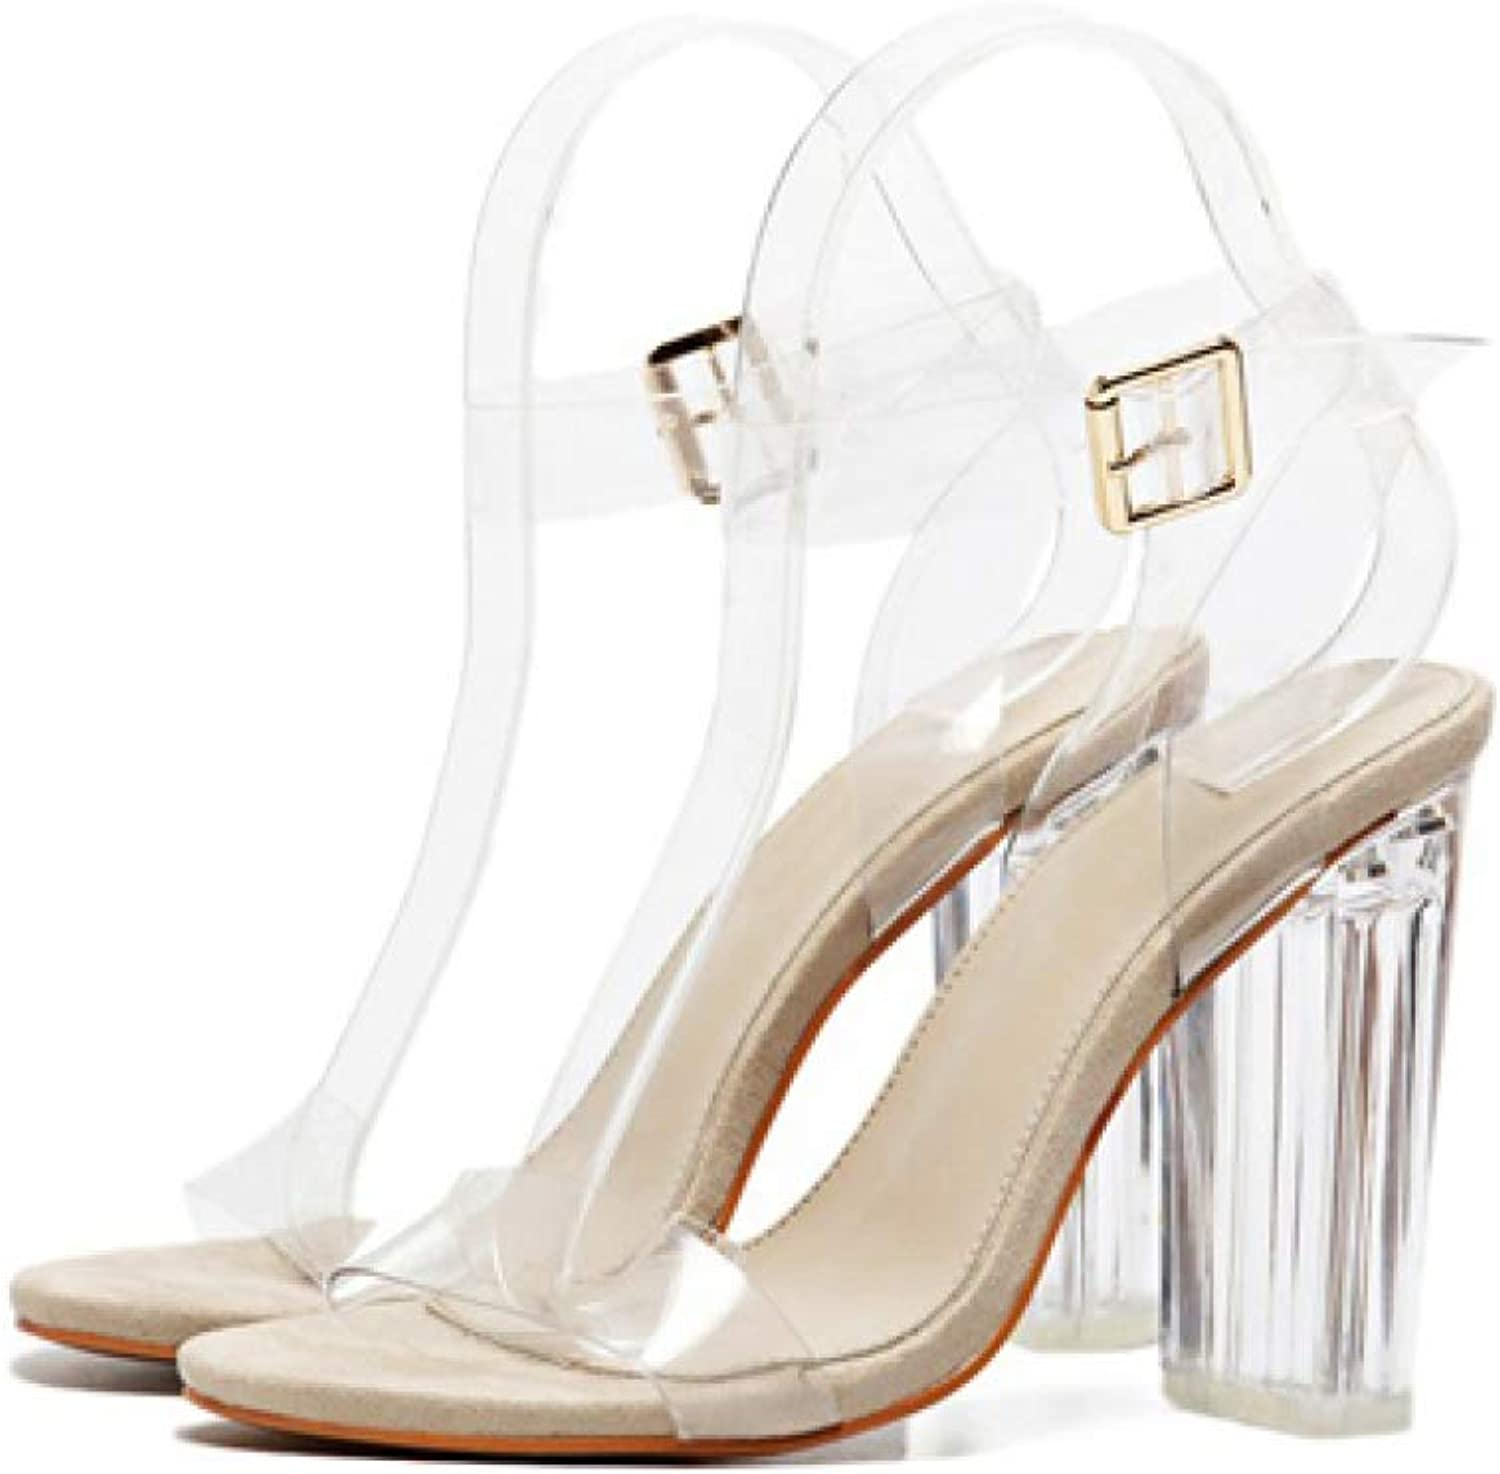 PVC Women Ankle Strap High Heels shoes Sexy Sandals T-Strap Clear Transparent Gladiator Sandals